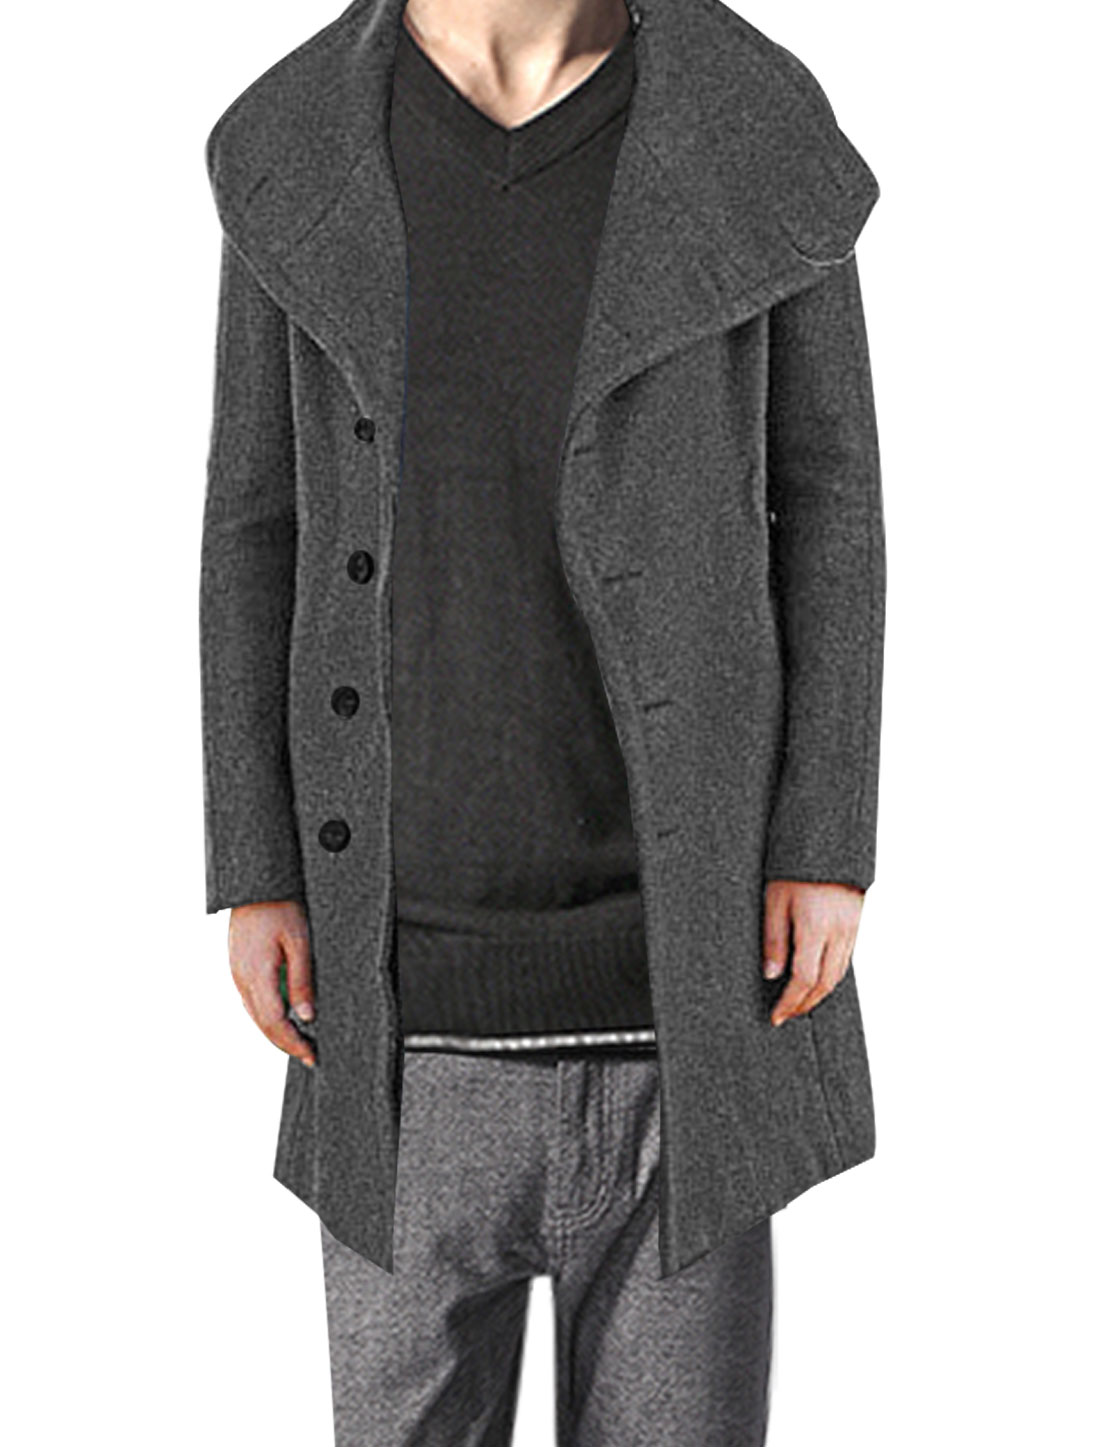 Mens Dark Gray Funnel Neck Long Sleeve Korea Stylish Tweed Overcoat M